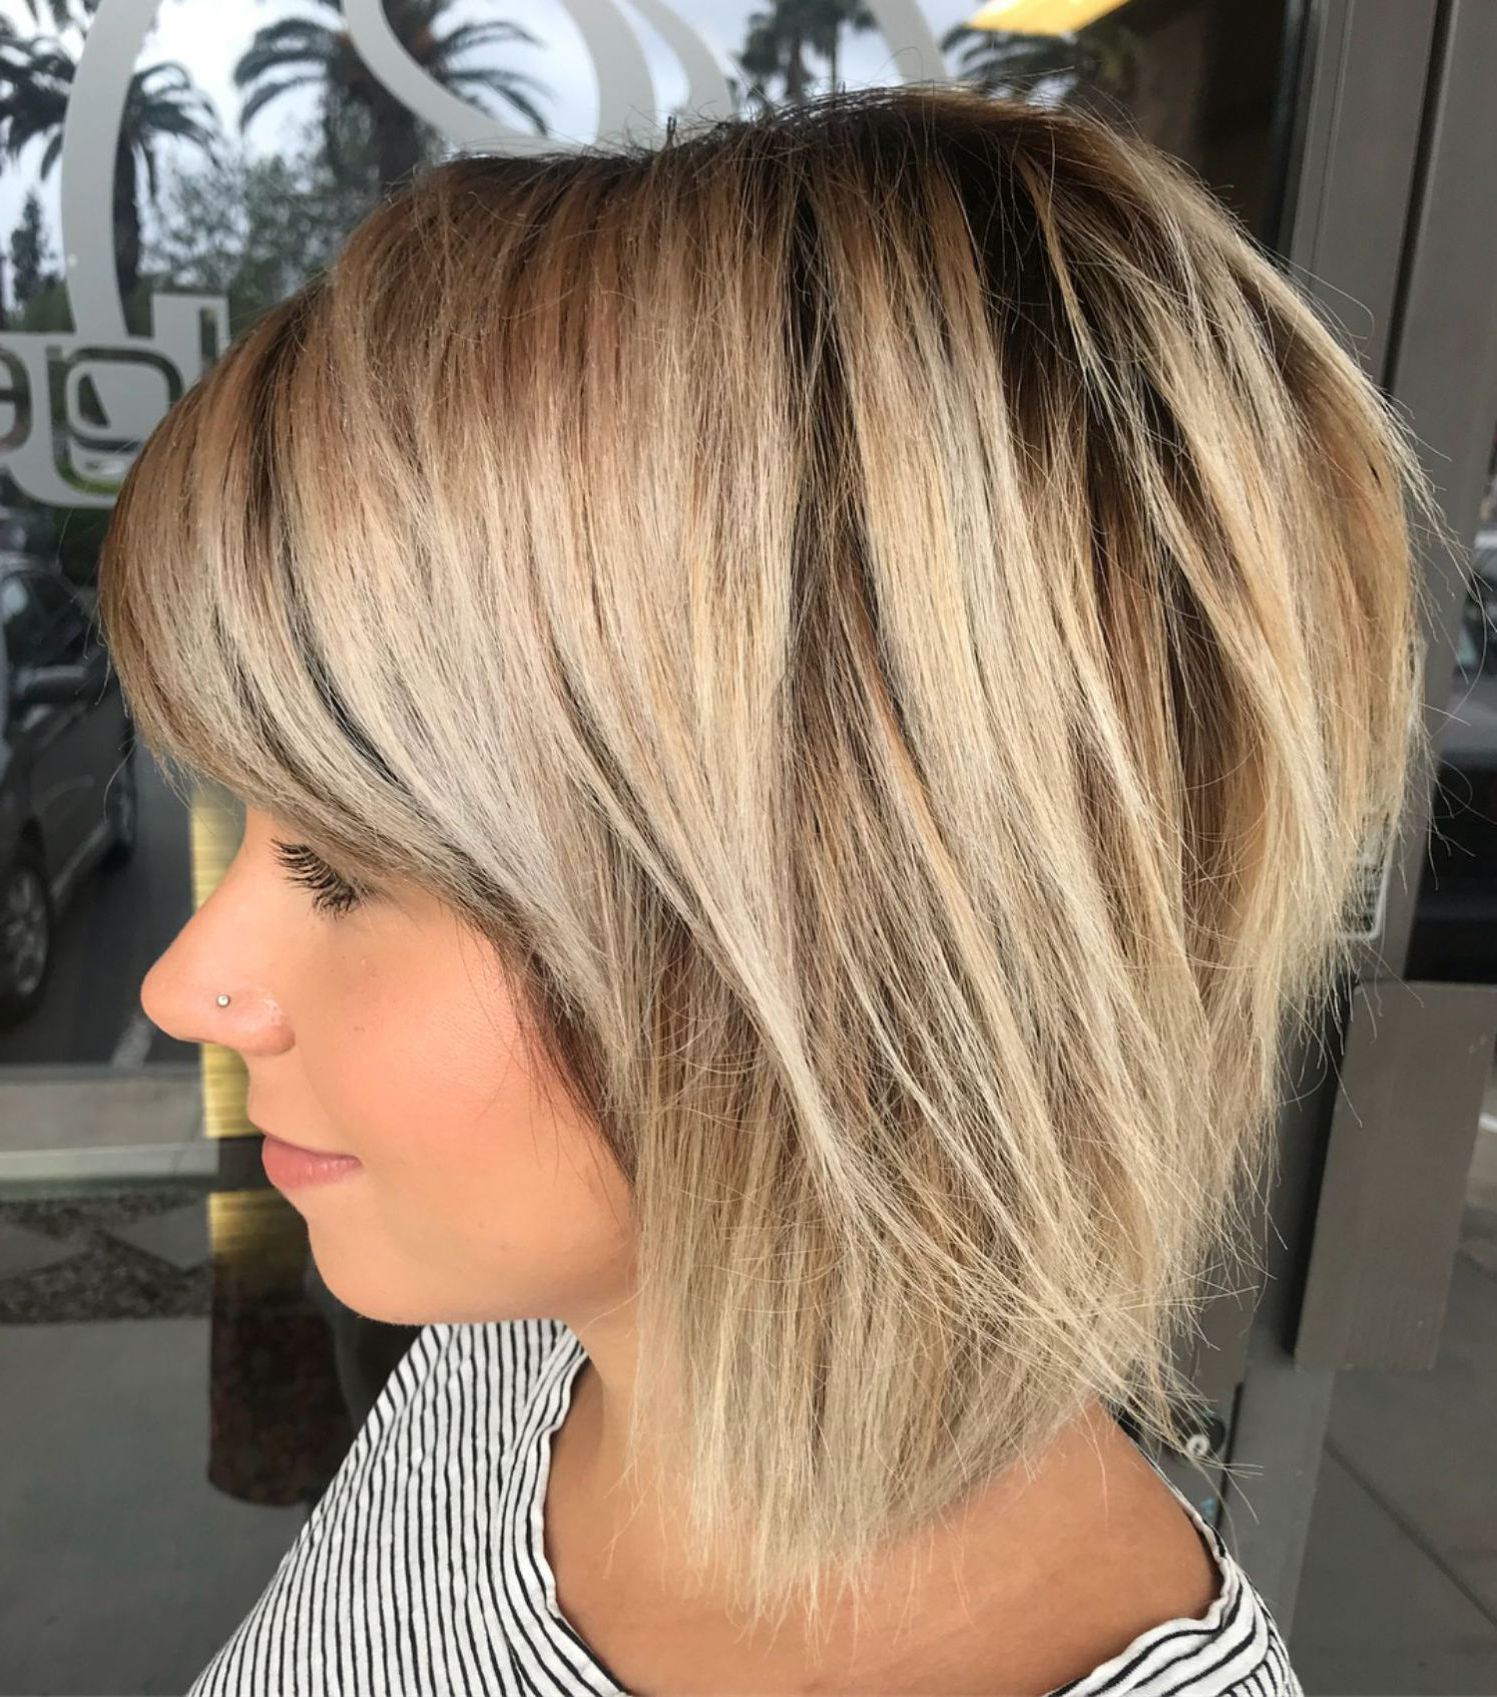 Hairstyles : Razored Blonde Bob Delightful 60 Beautiful And Pertaining To 2018 Razored Gray Bob Hairstyles With Bangs (View 10 of 20)